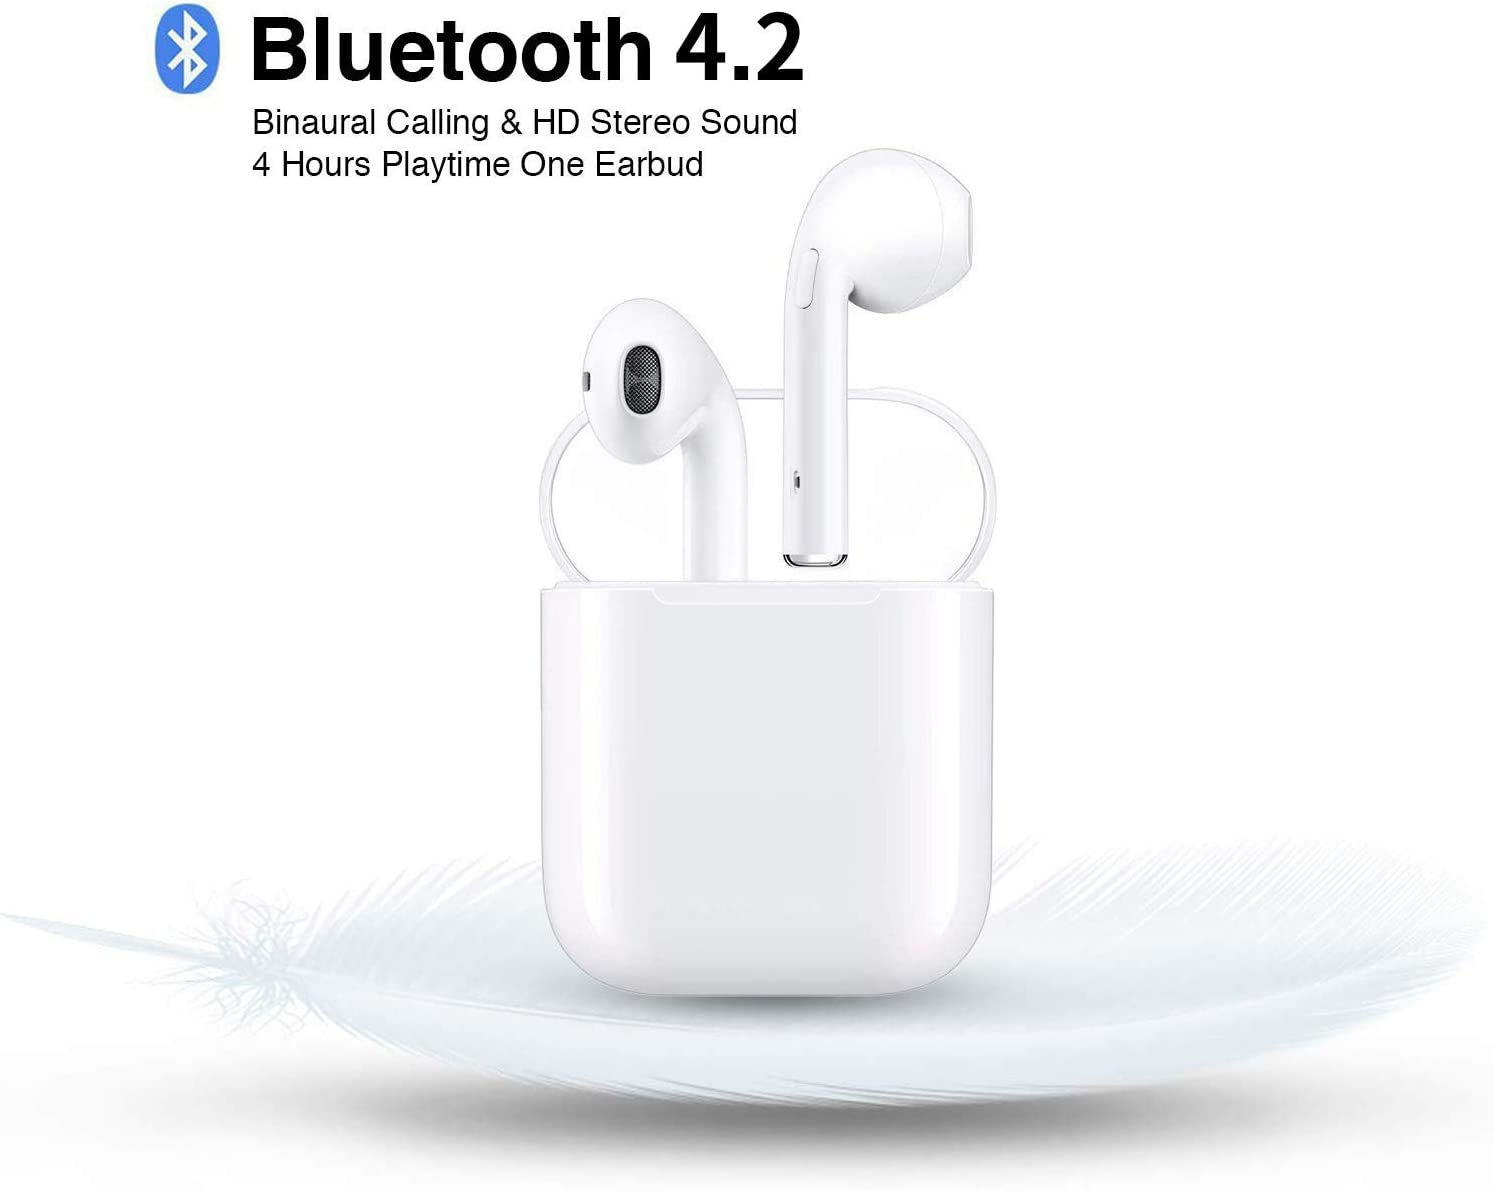 Wireless Bluetooth Earbuds with Portable Charging Case Anti-Sweat Earplugs Gym Running Long Battery Life in-Ear Noise Cancelling Stereo Headset for All Smartphones